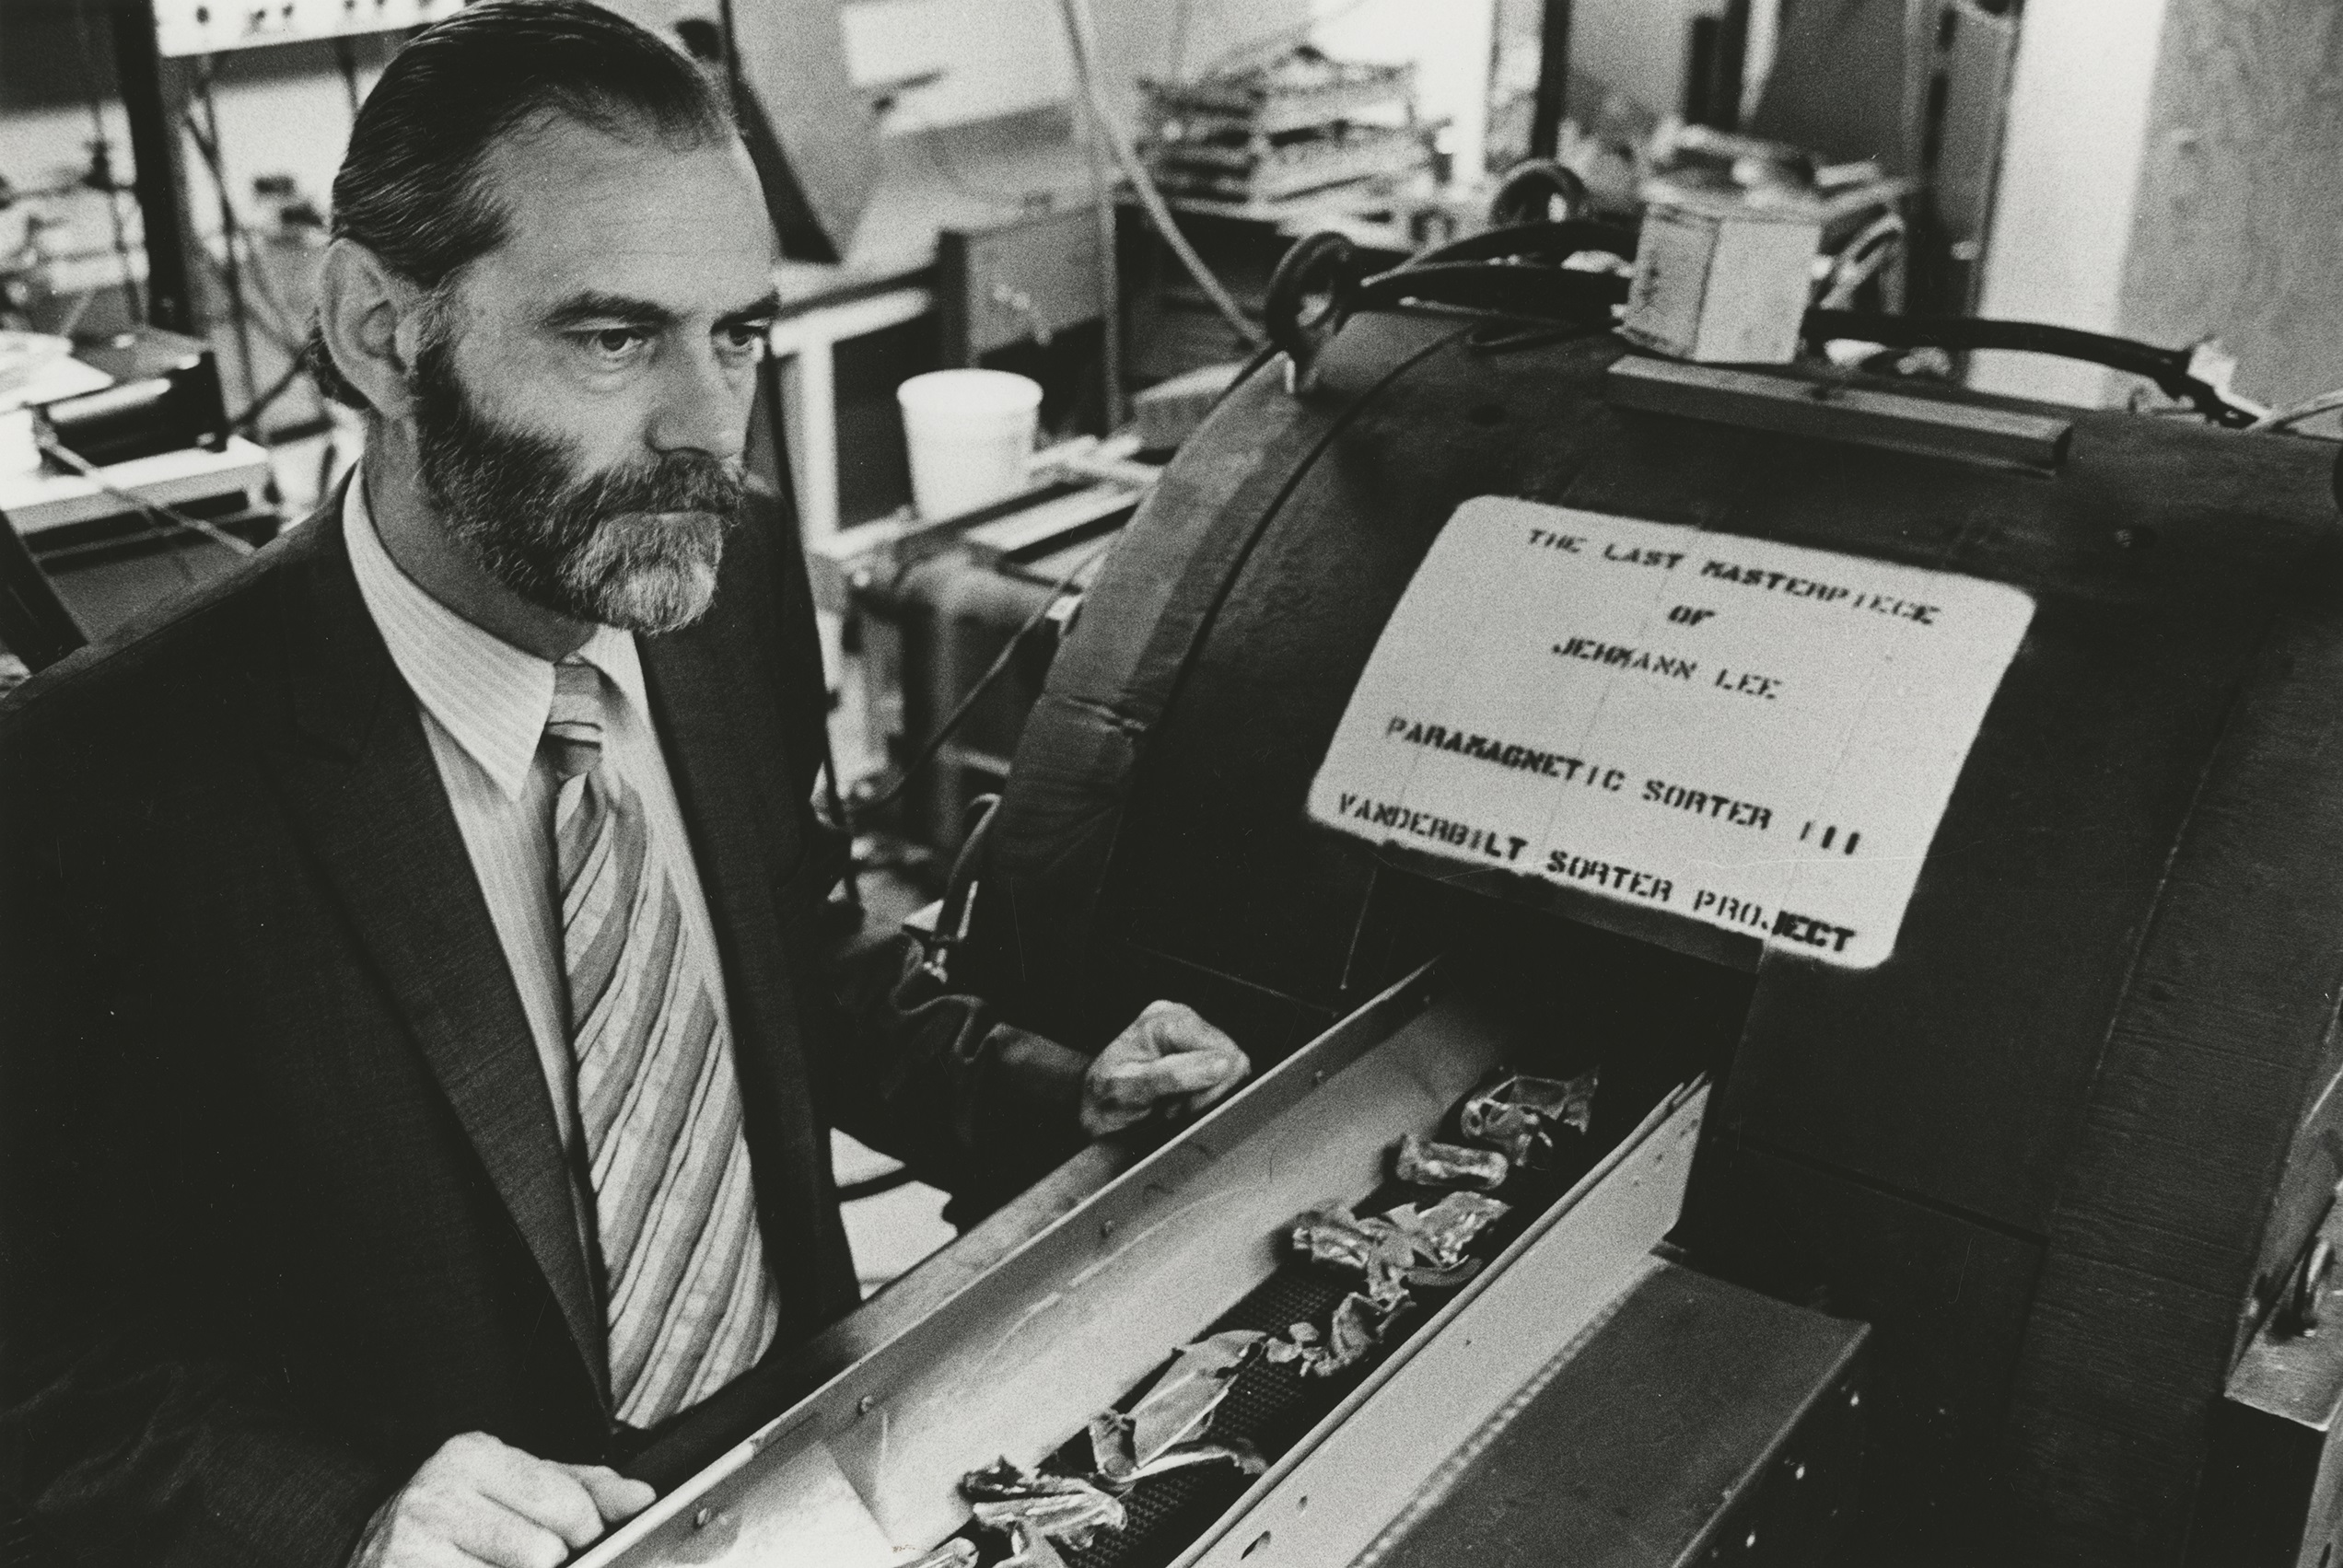 Roos, emeritus physics professor and pioneer in recycling technology, has died